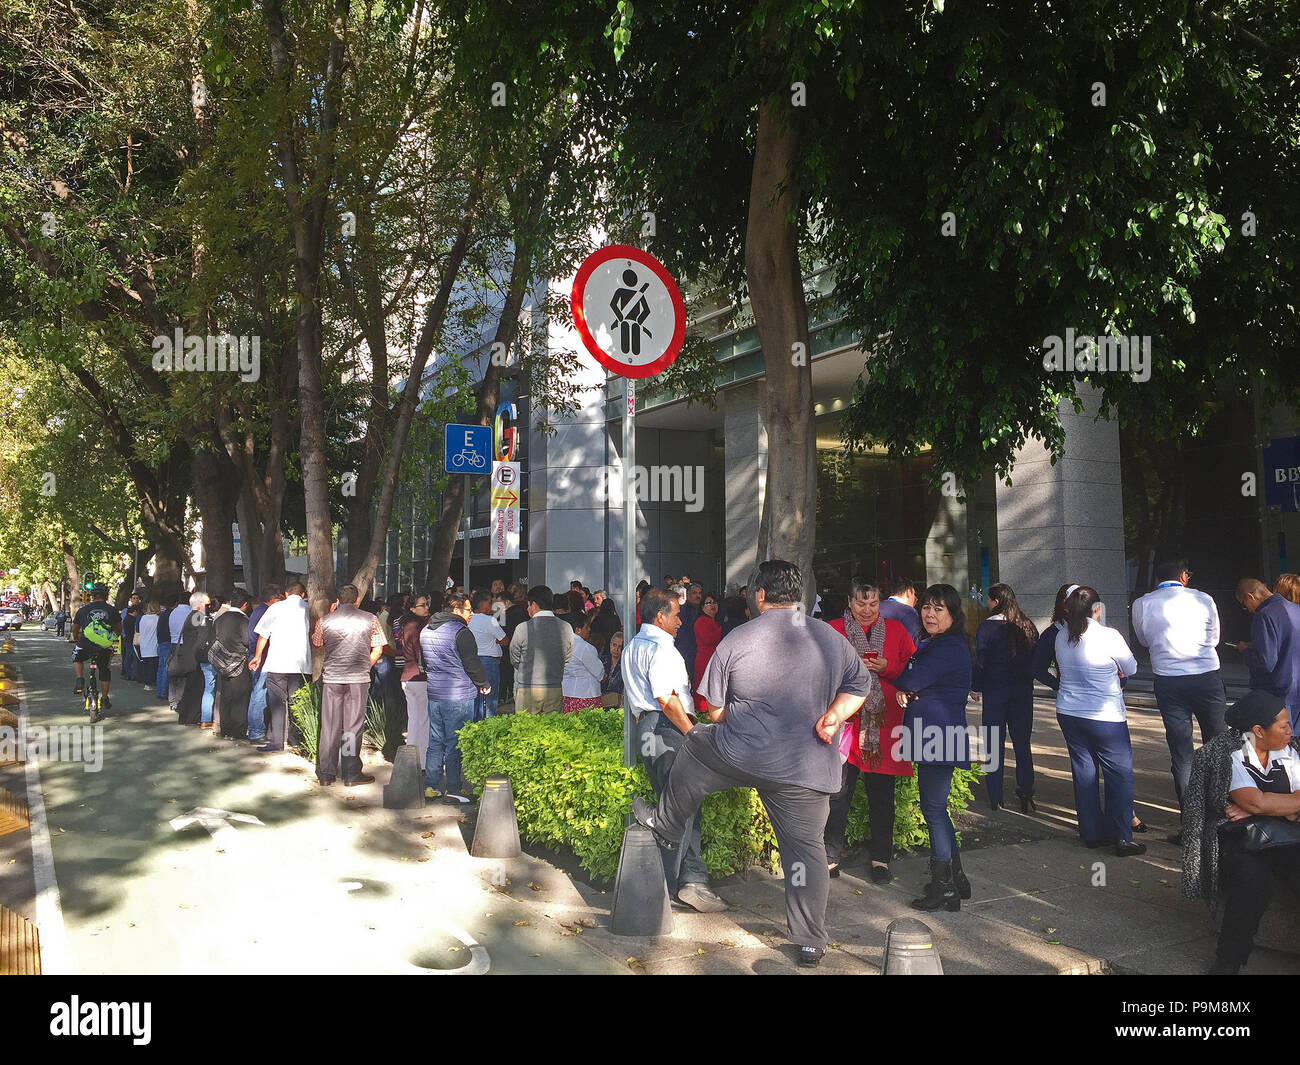 Mexico City, Mexico, 19 July 2018  An earthquake with a